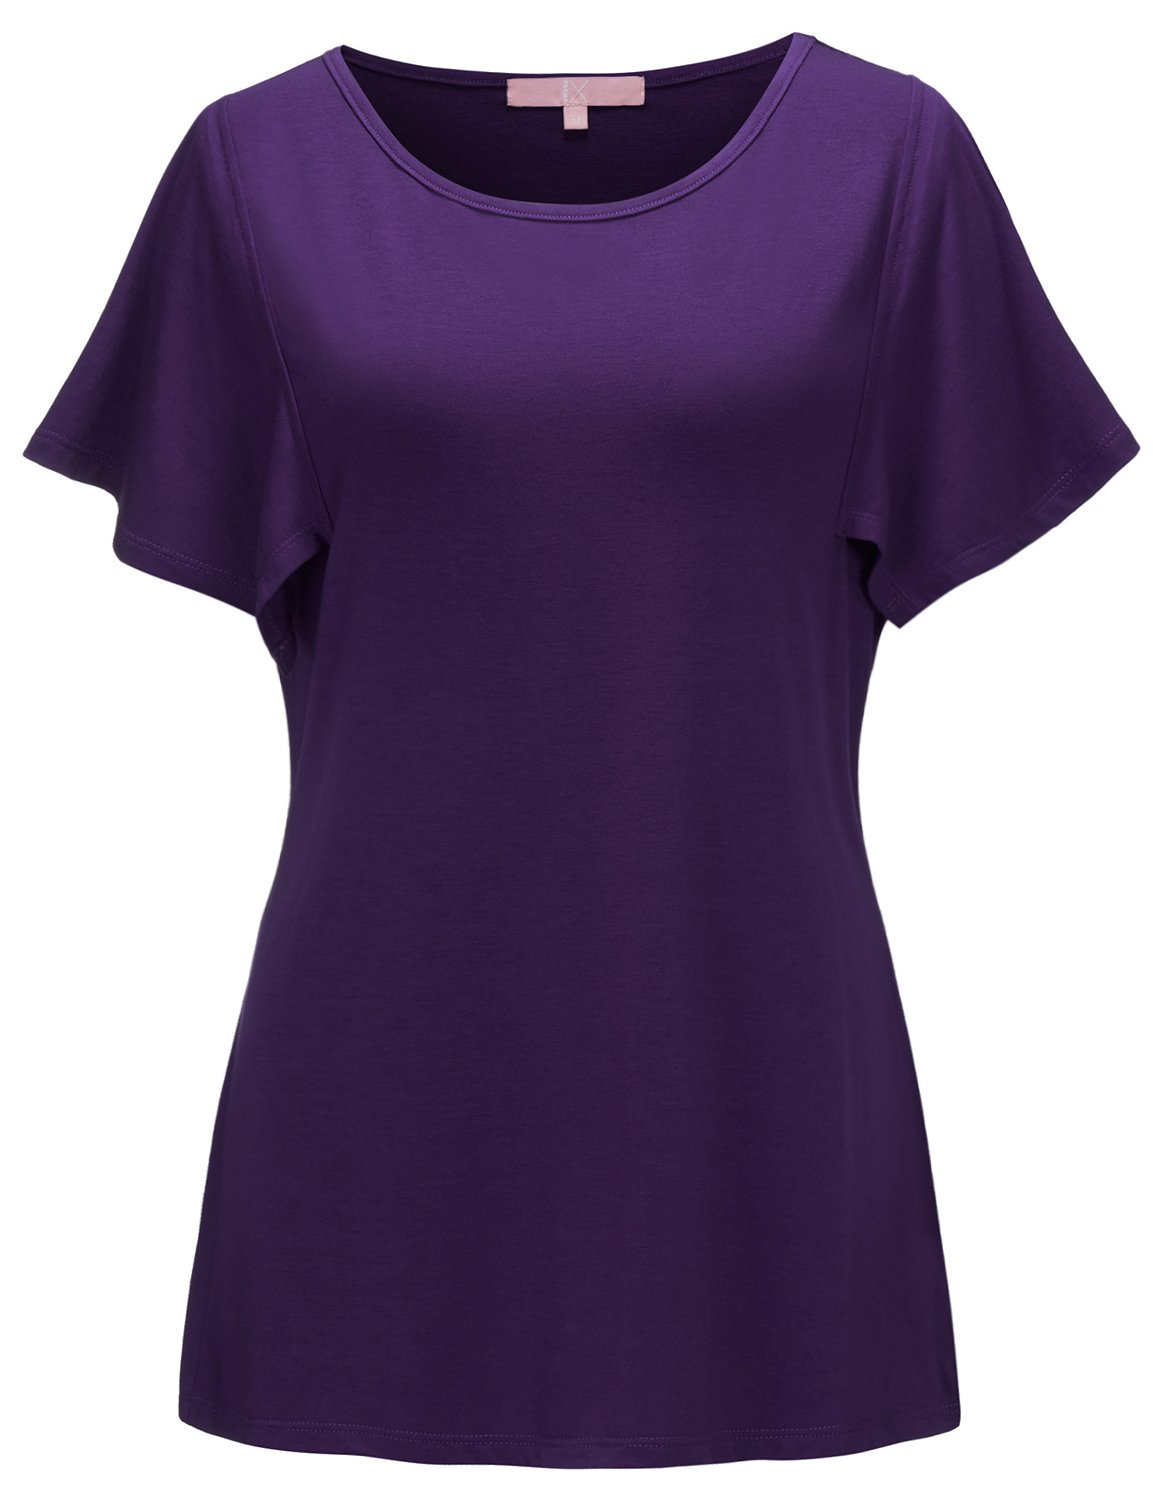 Regna X Women's Short Sleeve Scoop Neck Comfy Maternity Tunic Top Purple XL